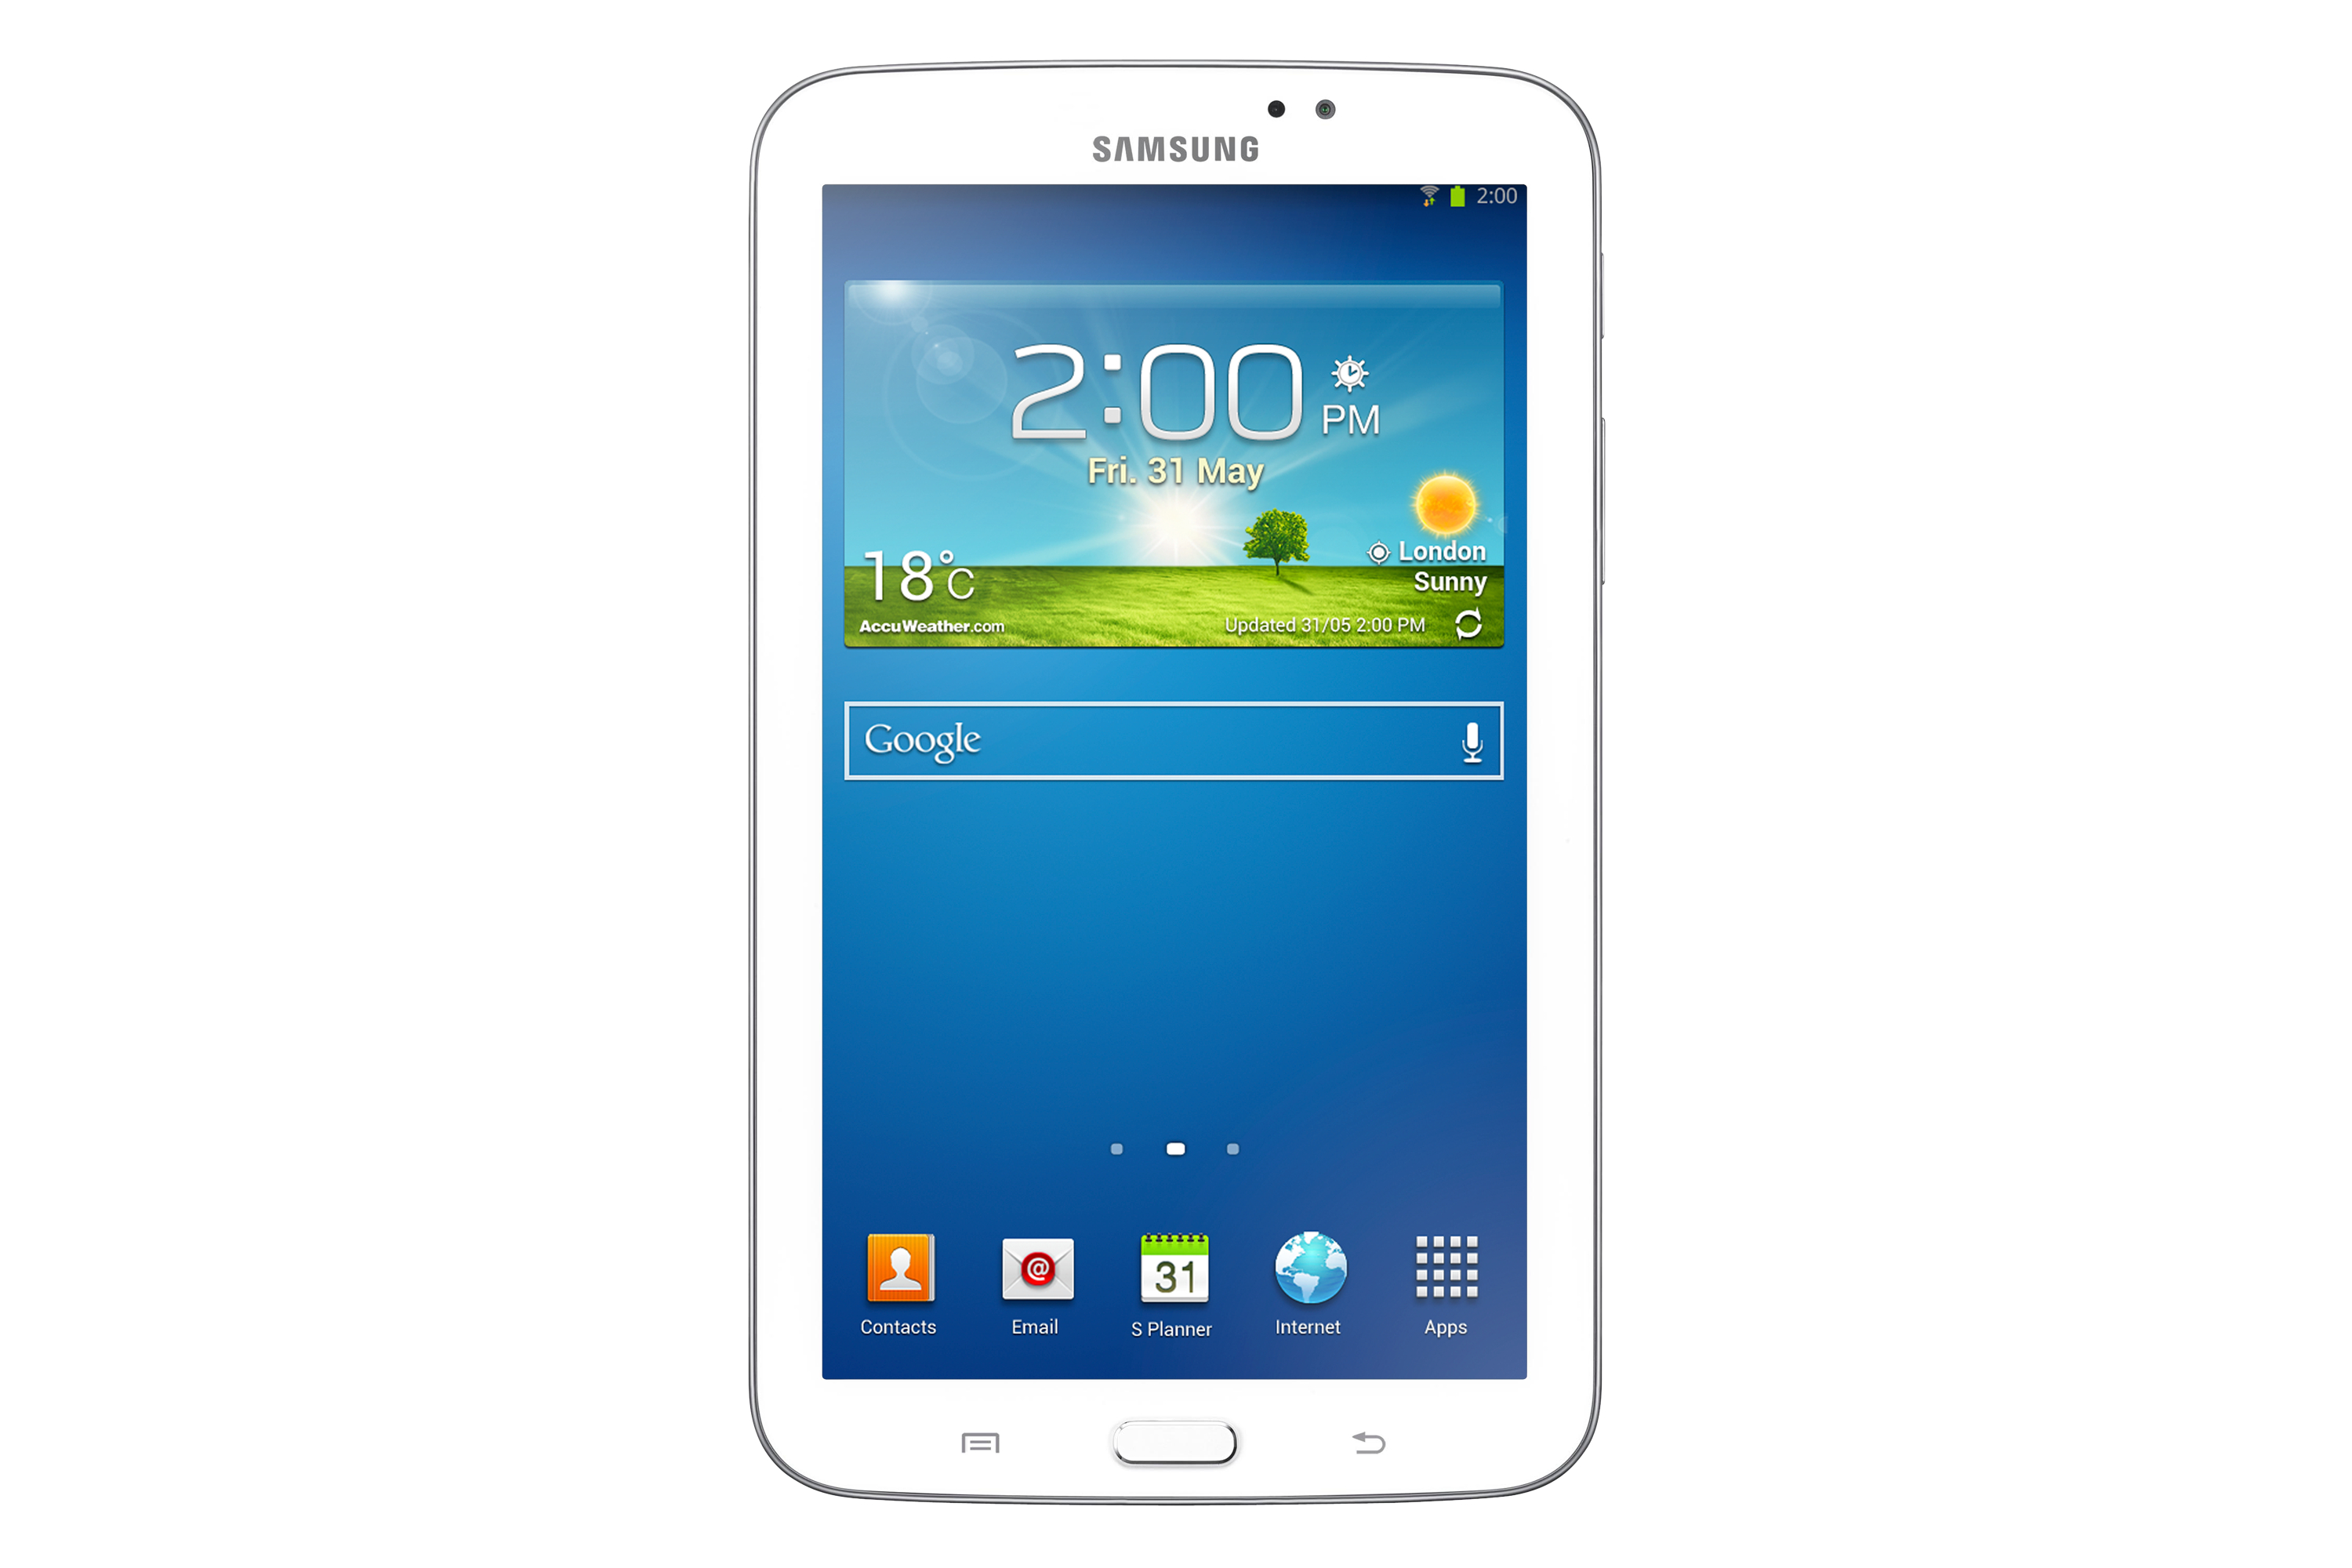 update Galaxy Tab 3 7.0 SM-T210 (Wi-Fi) to Android 4.4.2 Kitkat